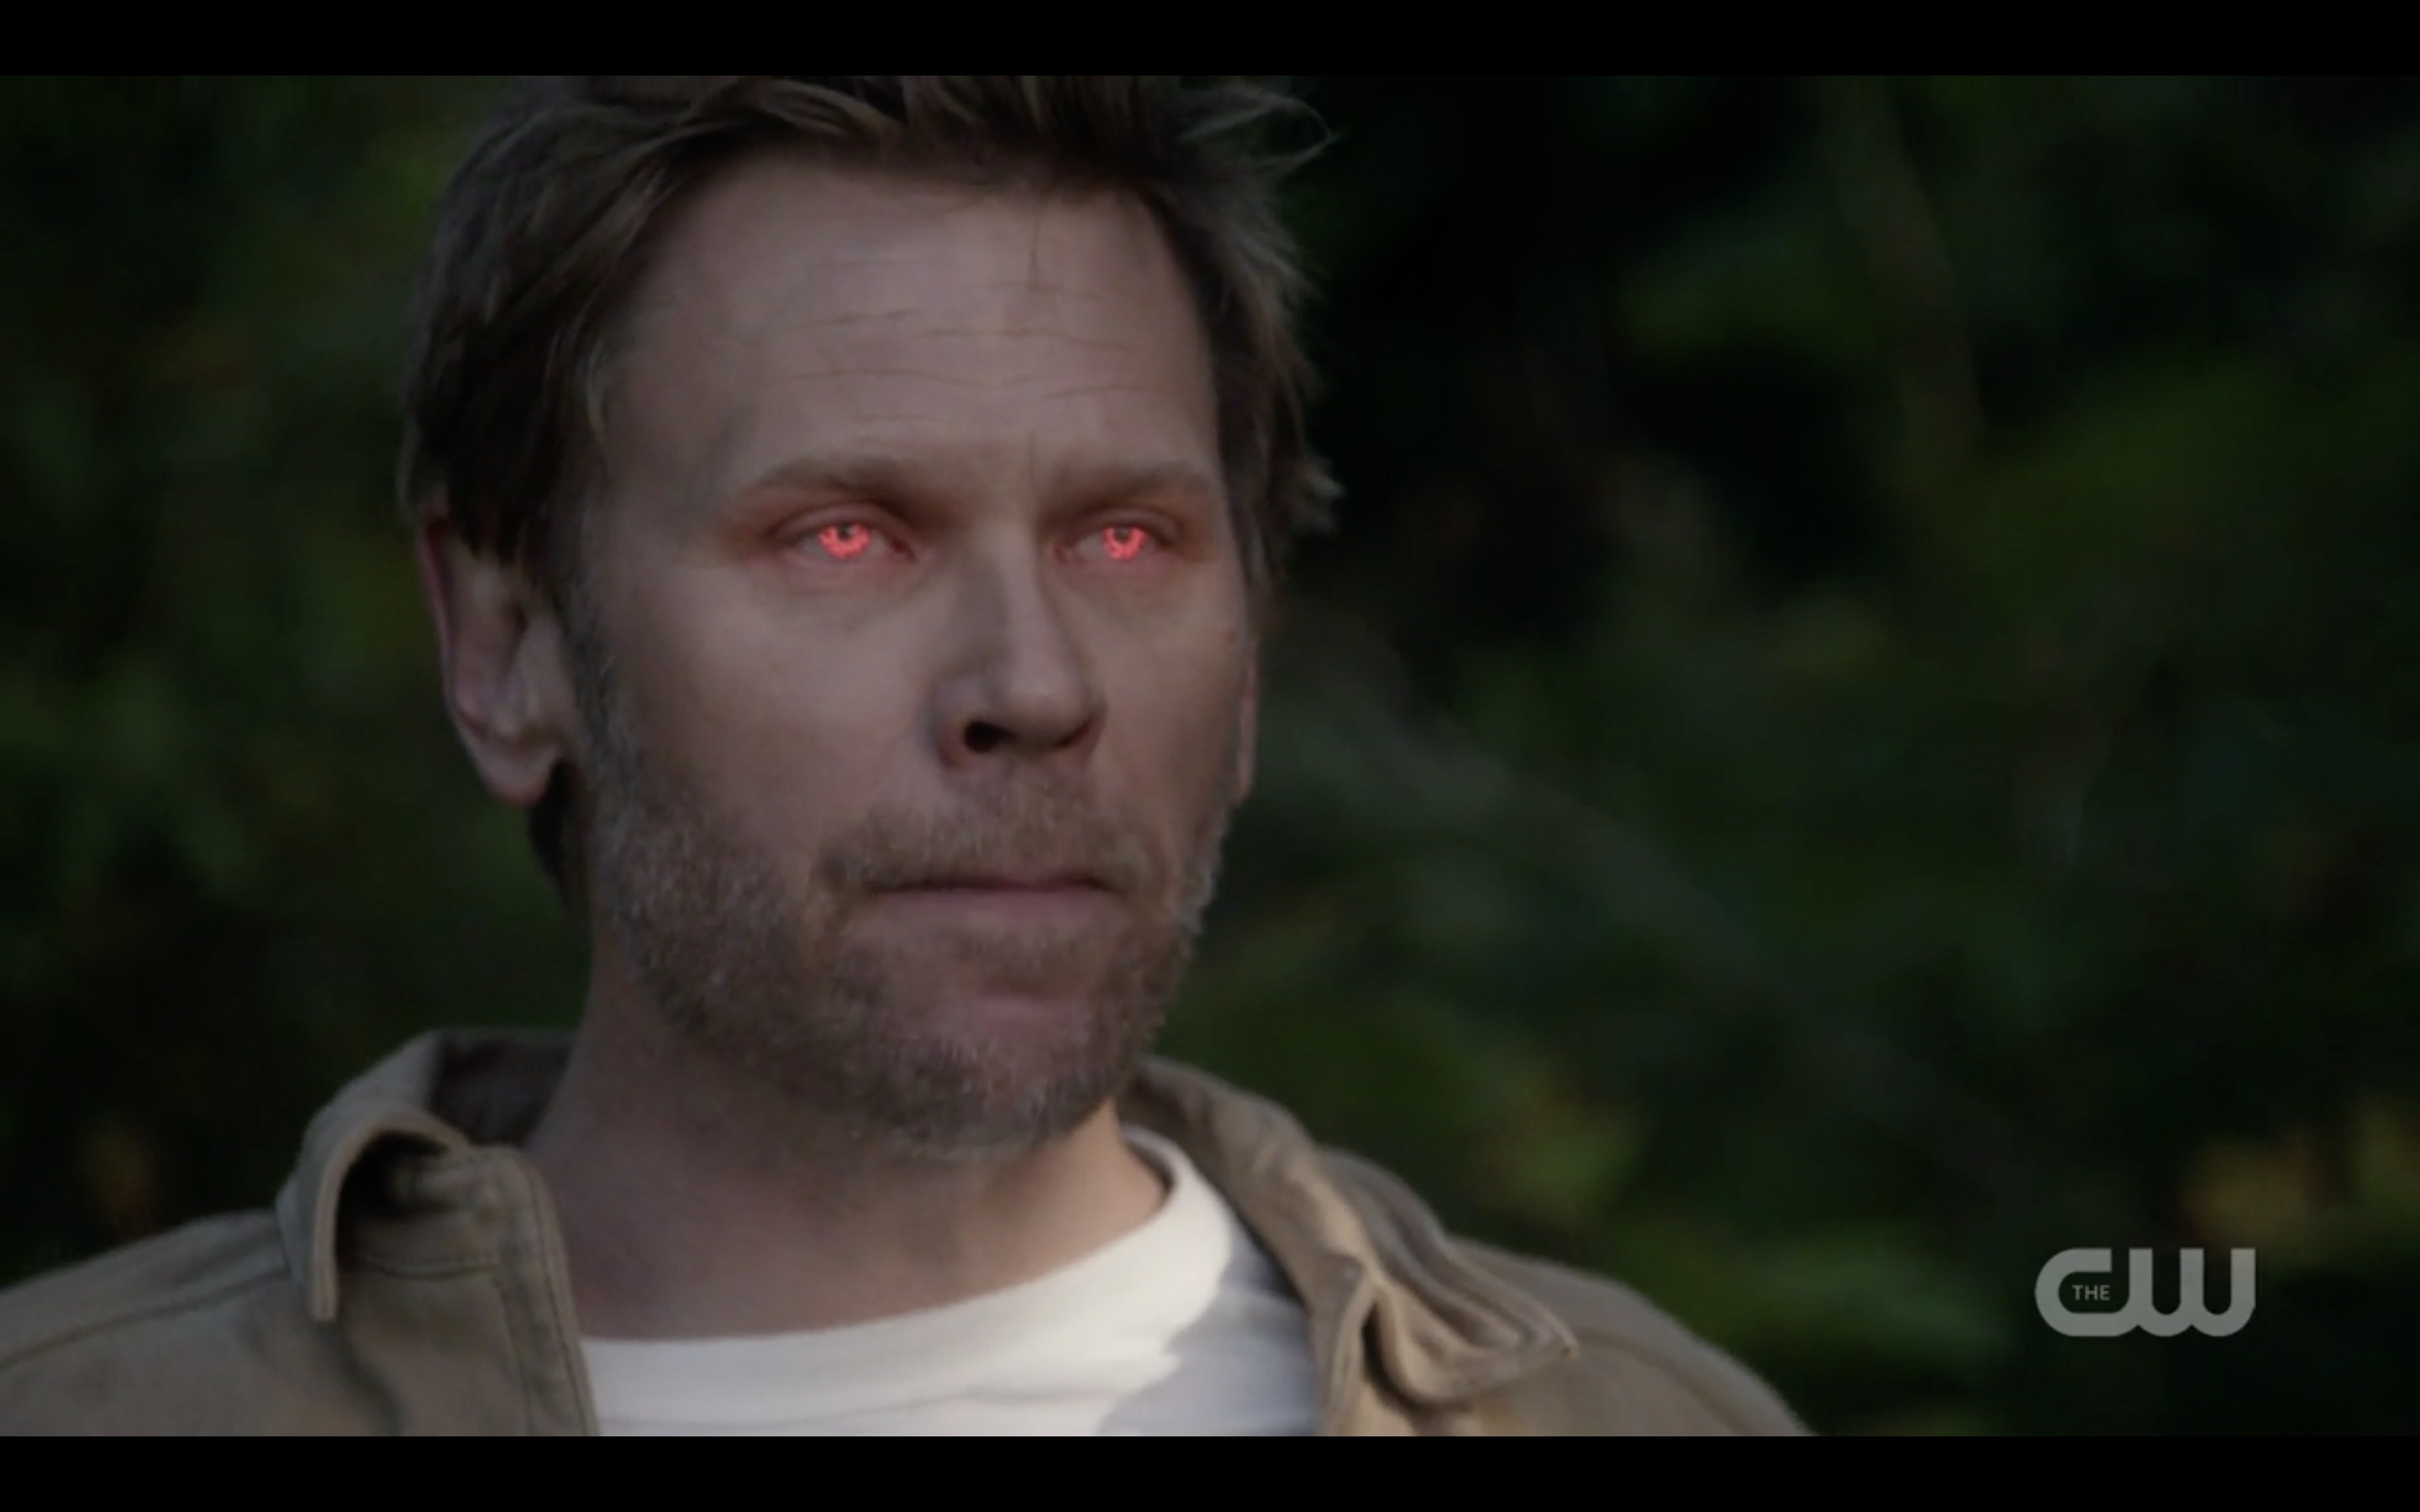 Supernatural Lucifer Red Eyes Scaring Off Angles War Of Worlds